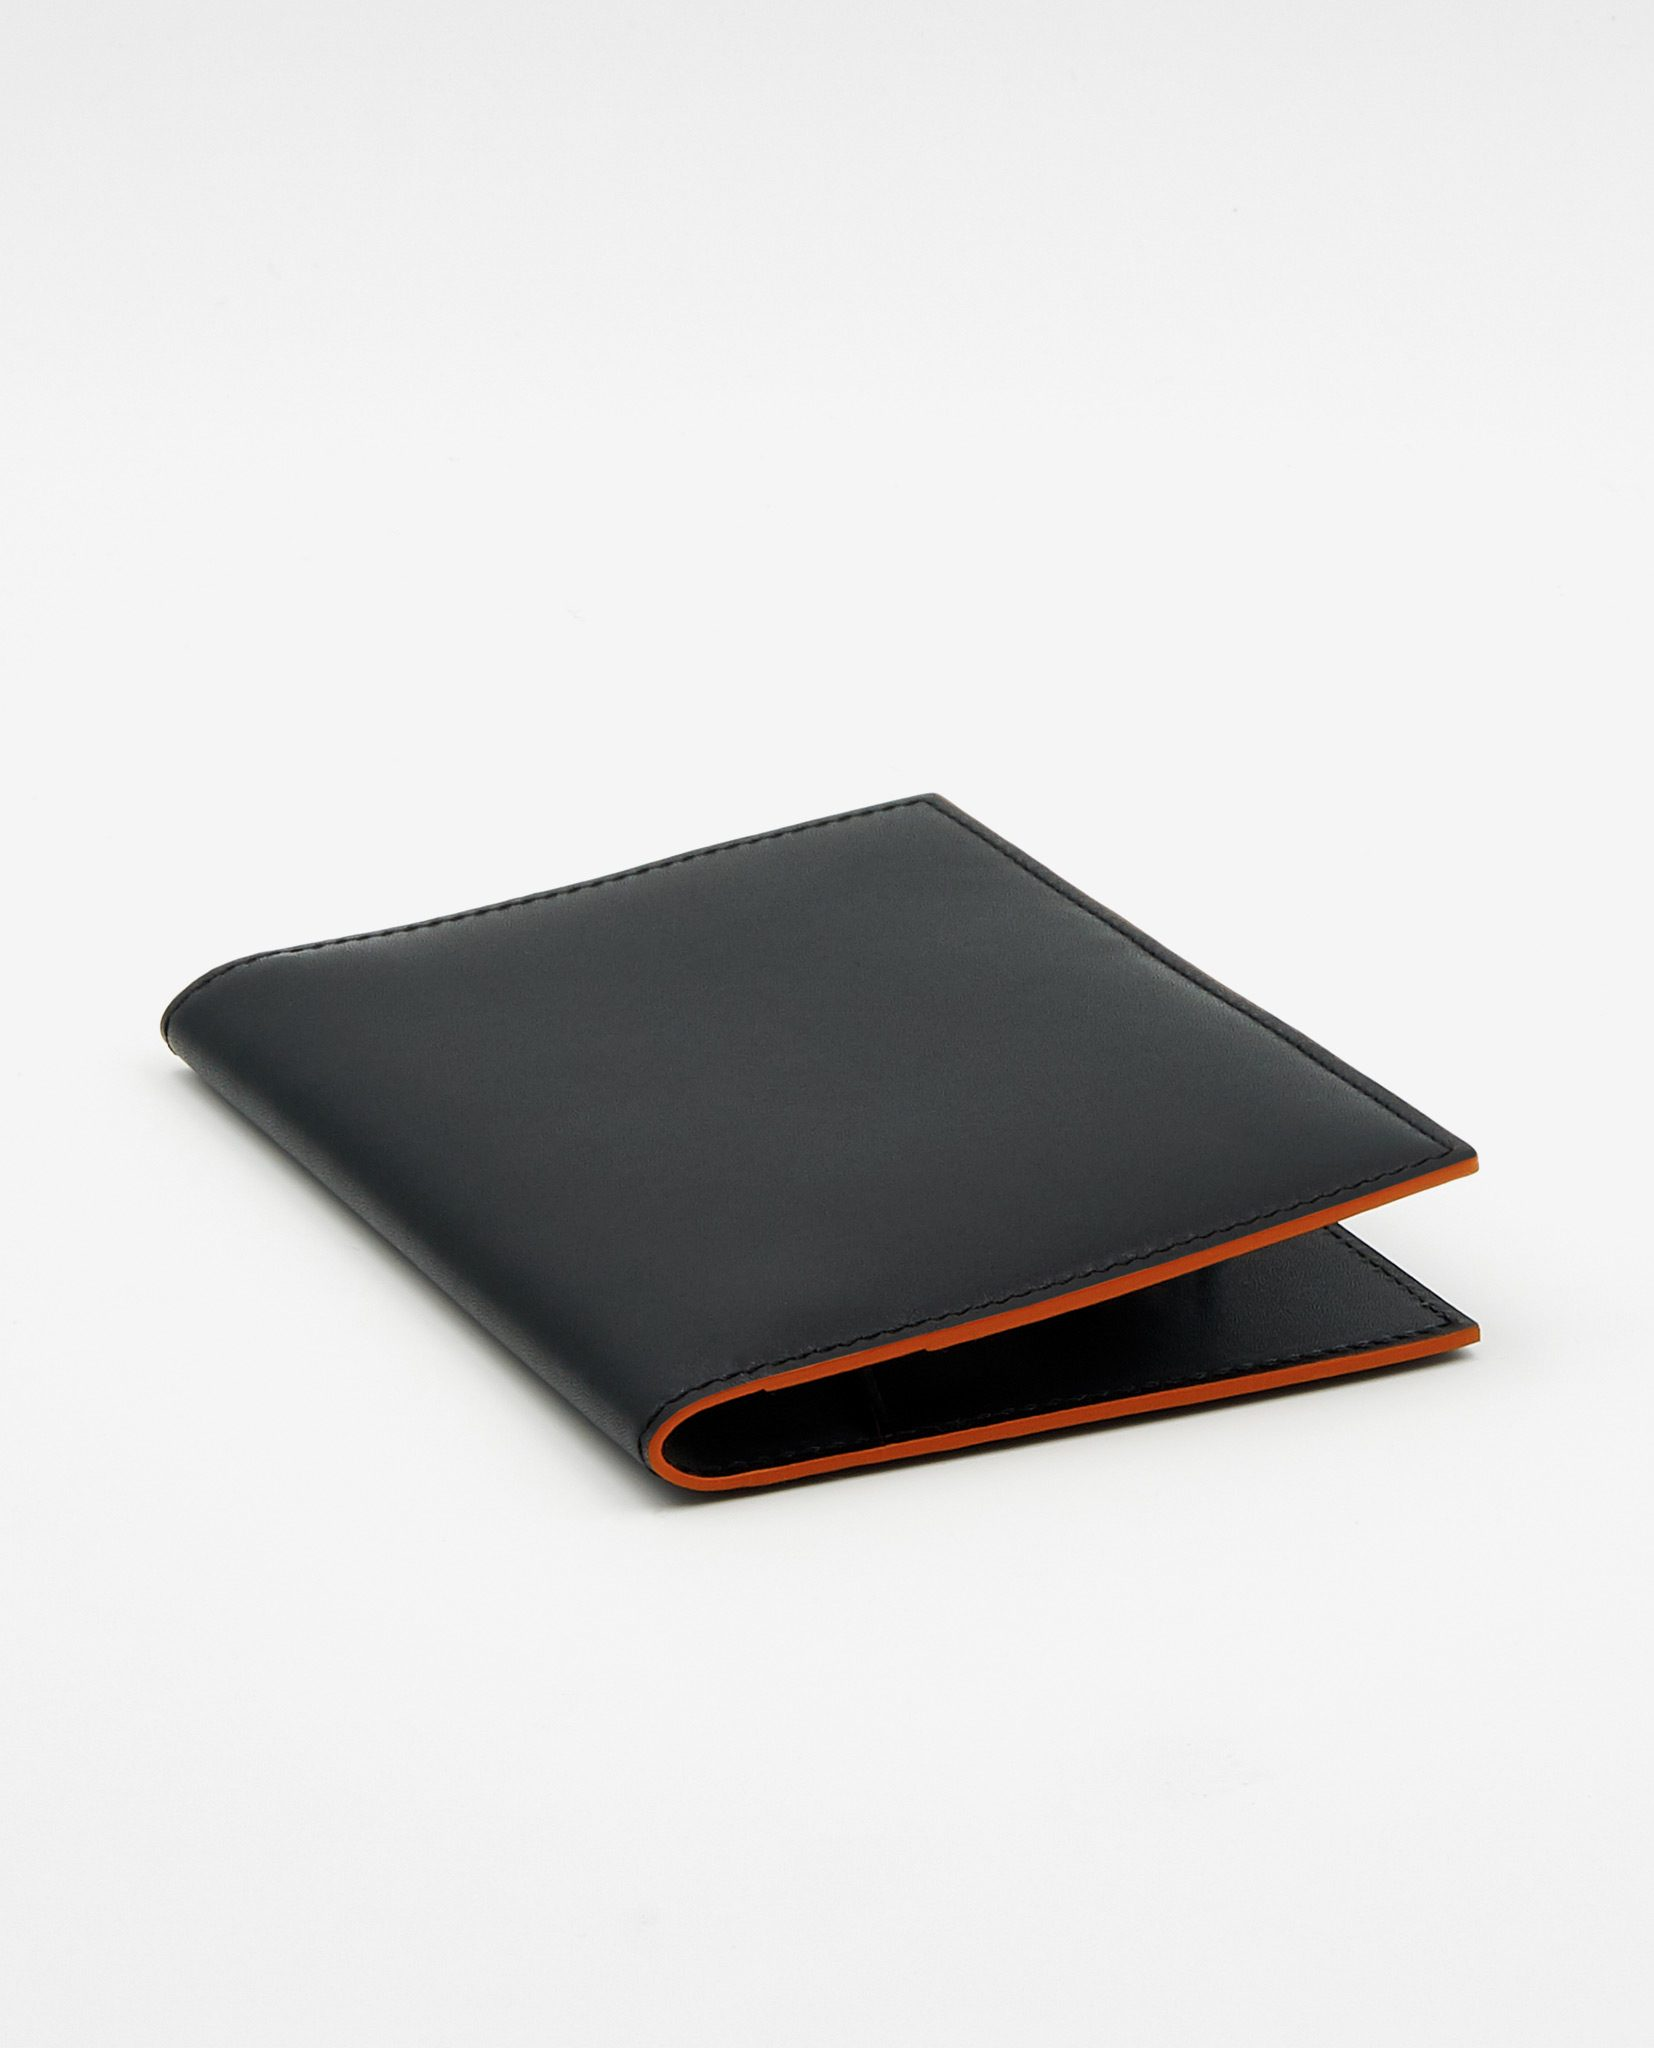 Soofre Smooth Leather Passport Holder Color Black Orange